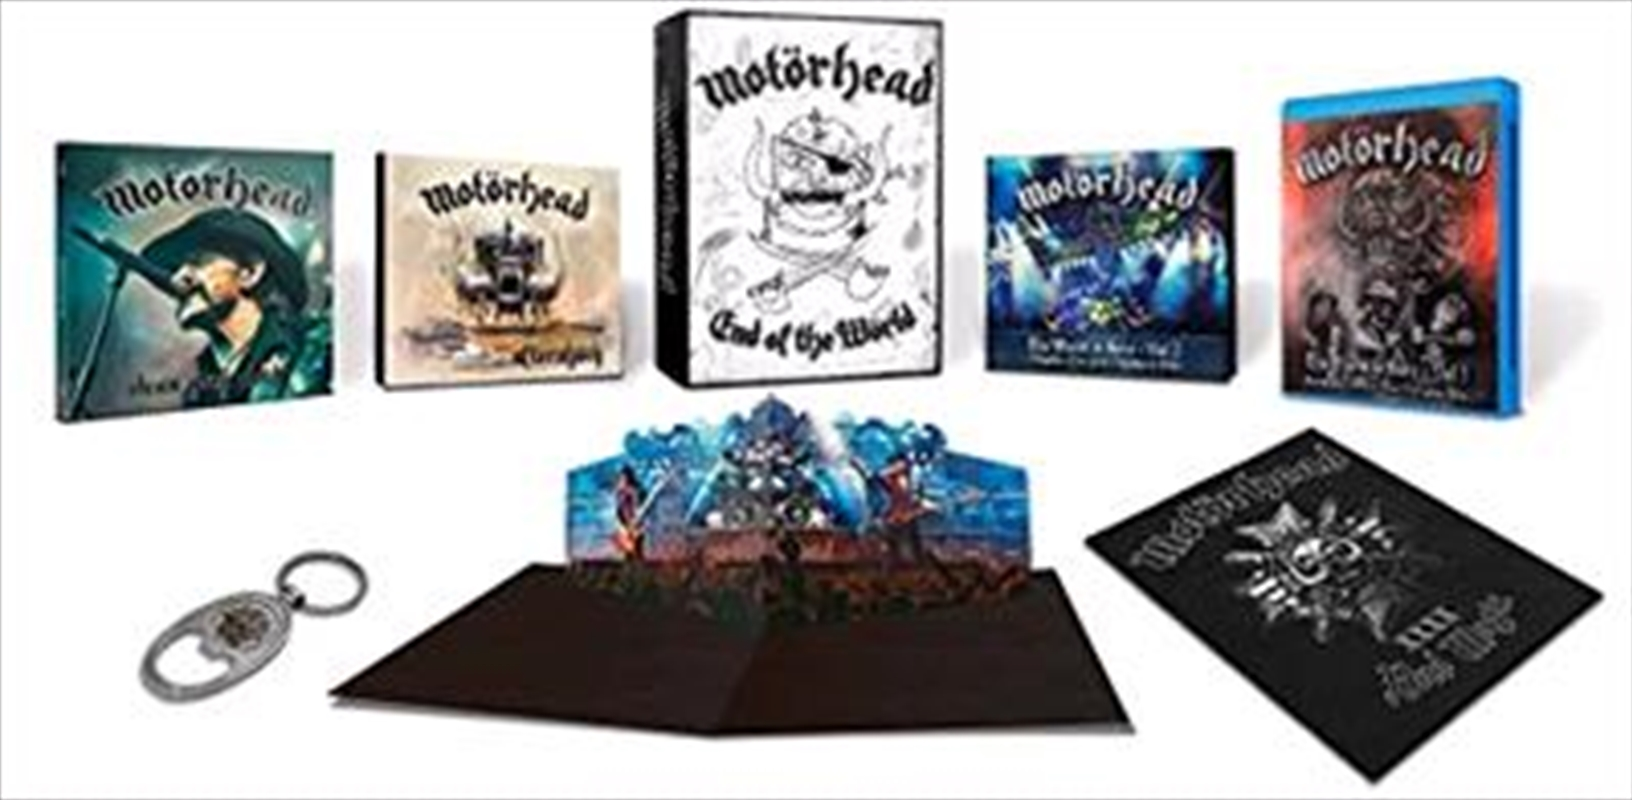 End Of The World | Blu-ray/CD